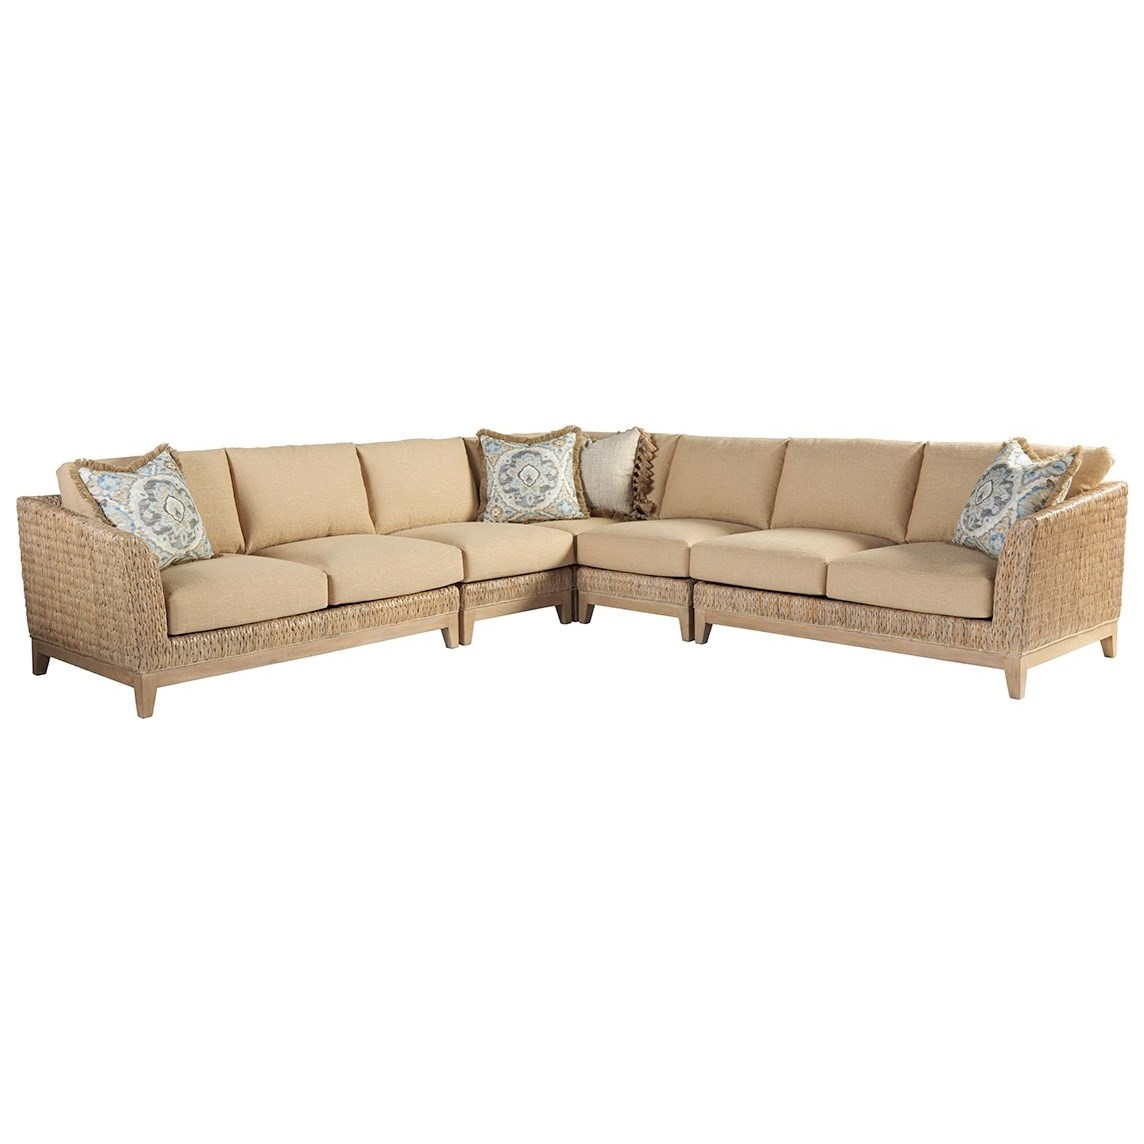 Los Altos Brisbane 5 Pc Sectional by Tommy Bahama Home at Baer's Furniture